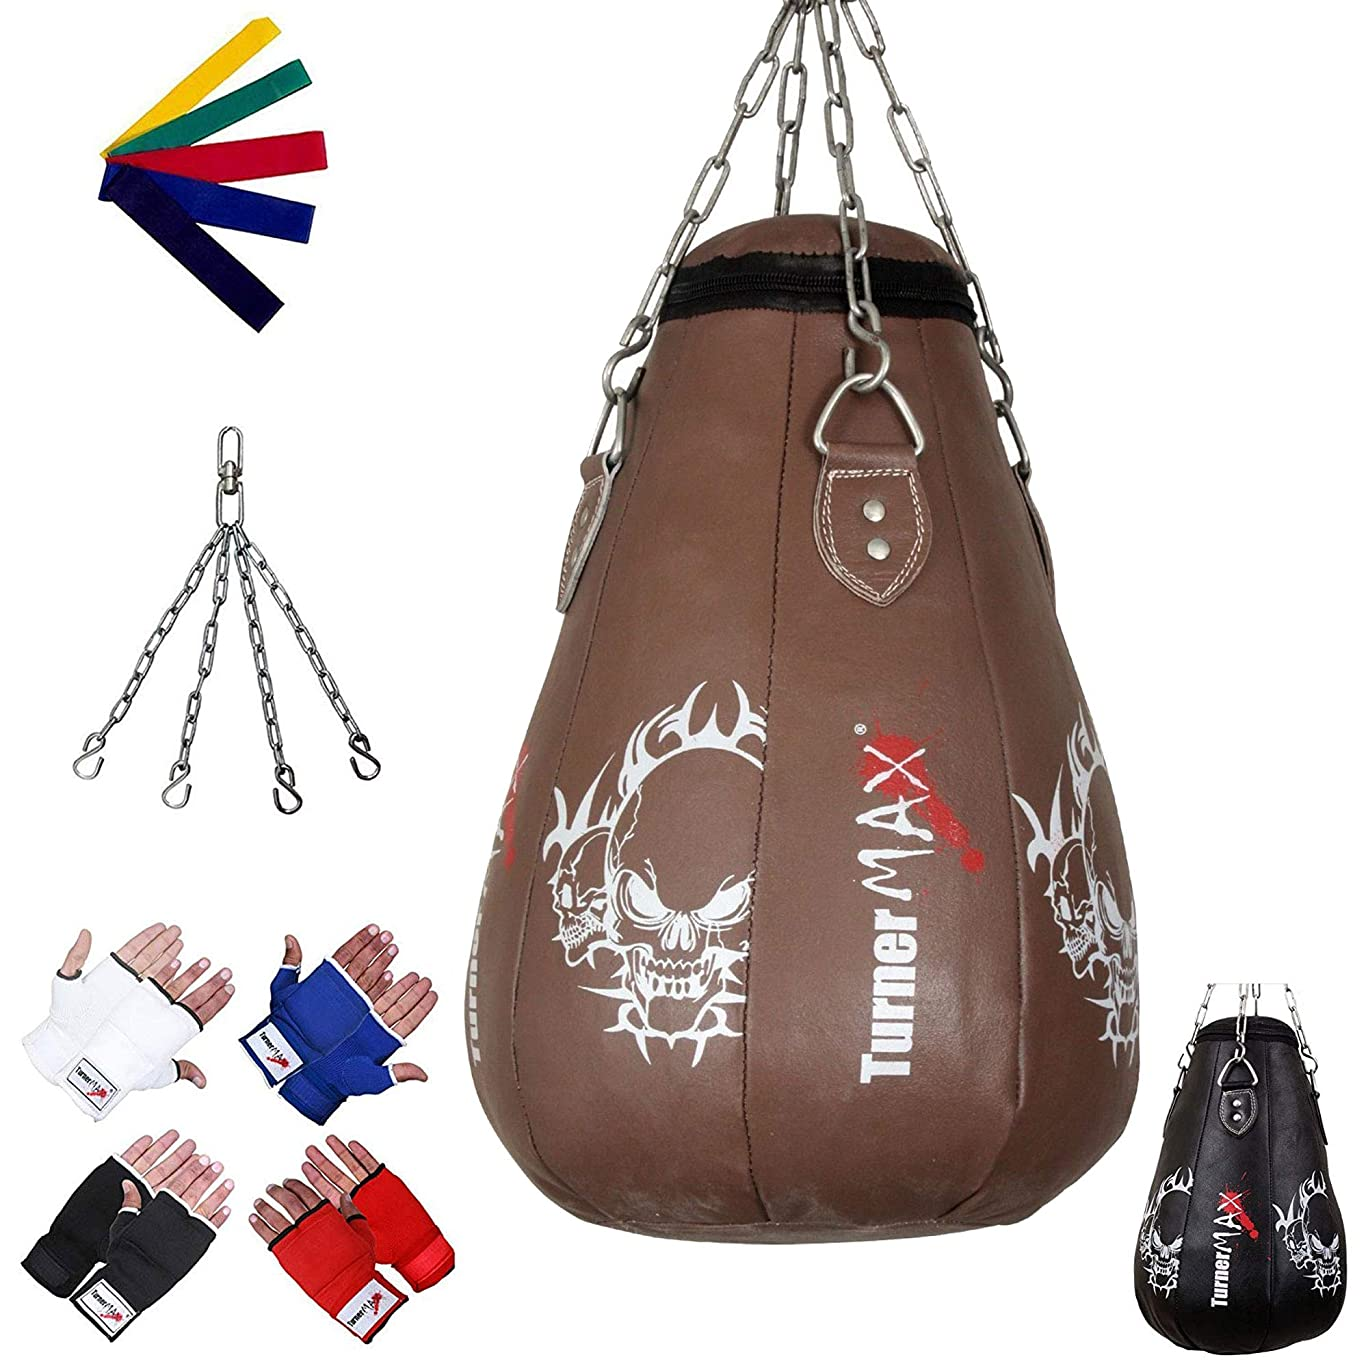 TurnerMAX Maize bag Leather Natural 2ft with Inner gloves and Stretch band